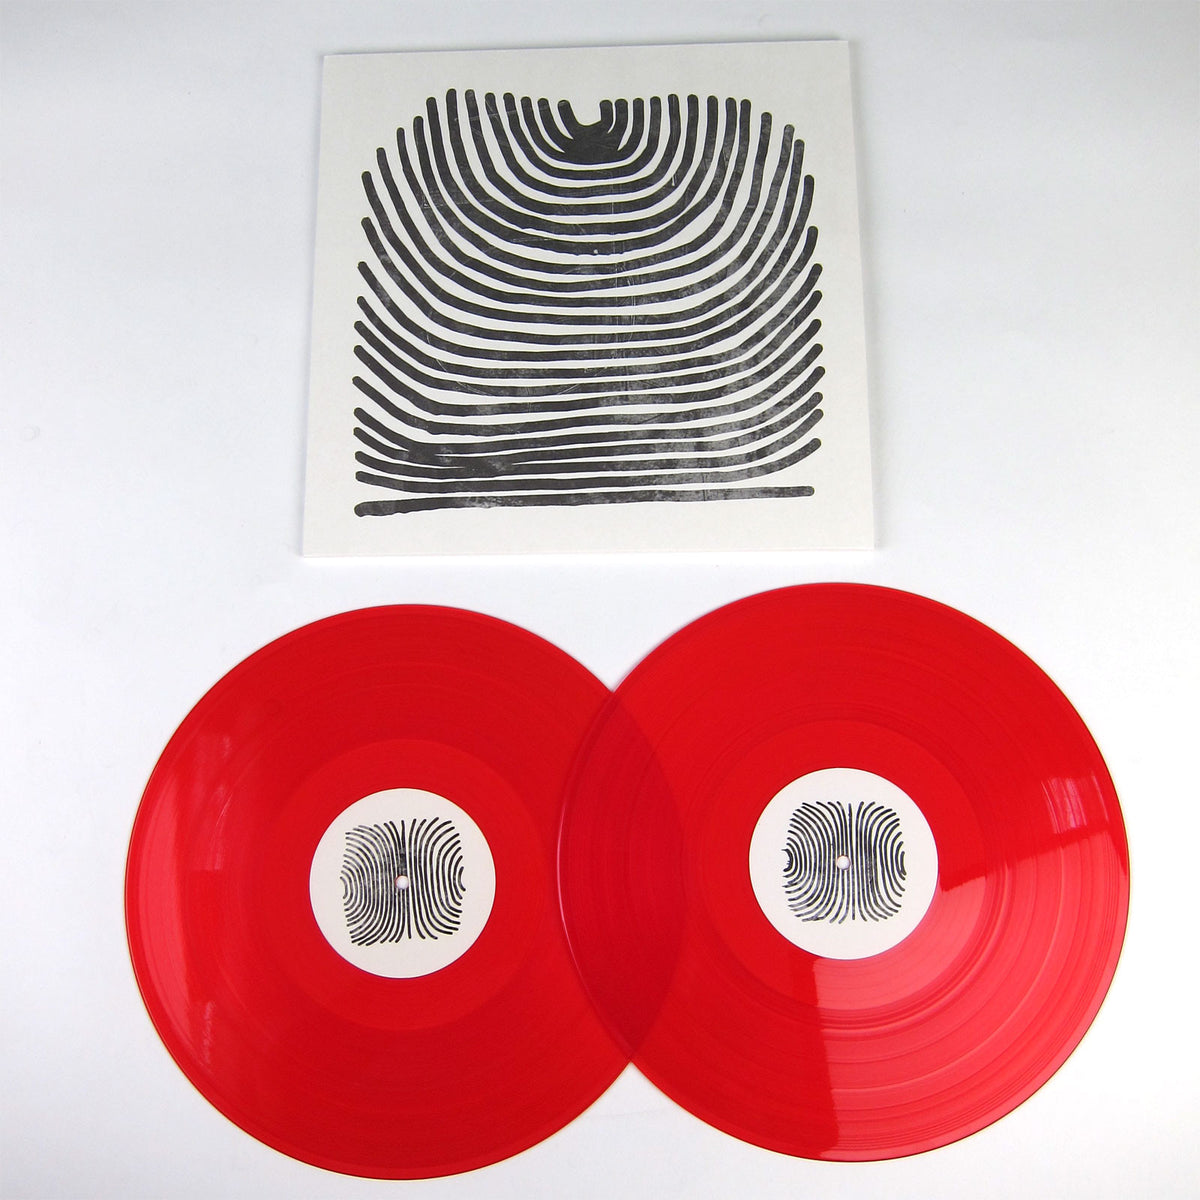 Rival Consoles: Howl (Colored Vinyl) Vinyl LP